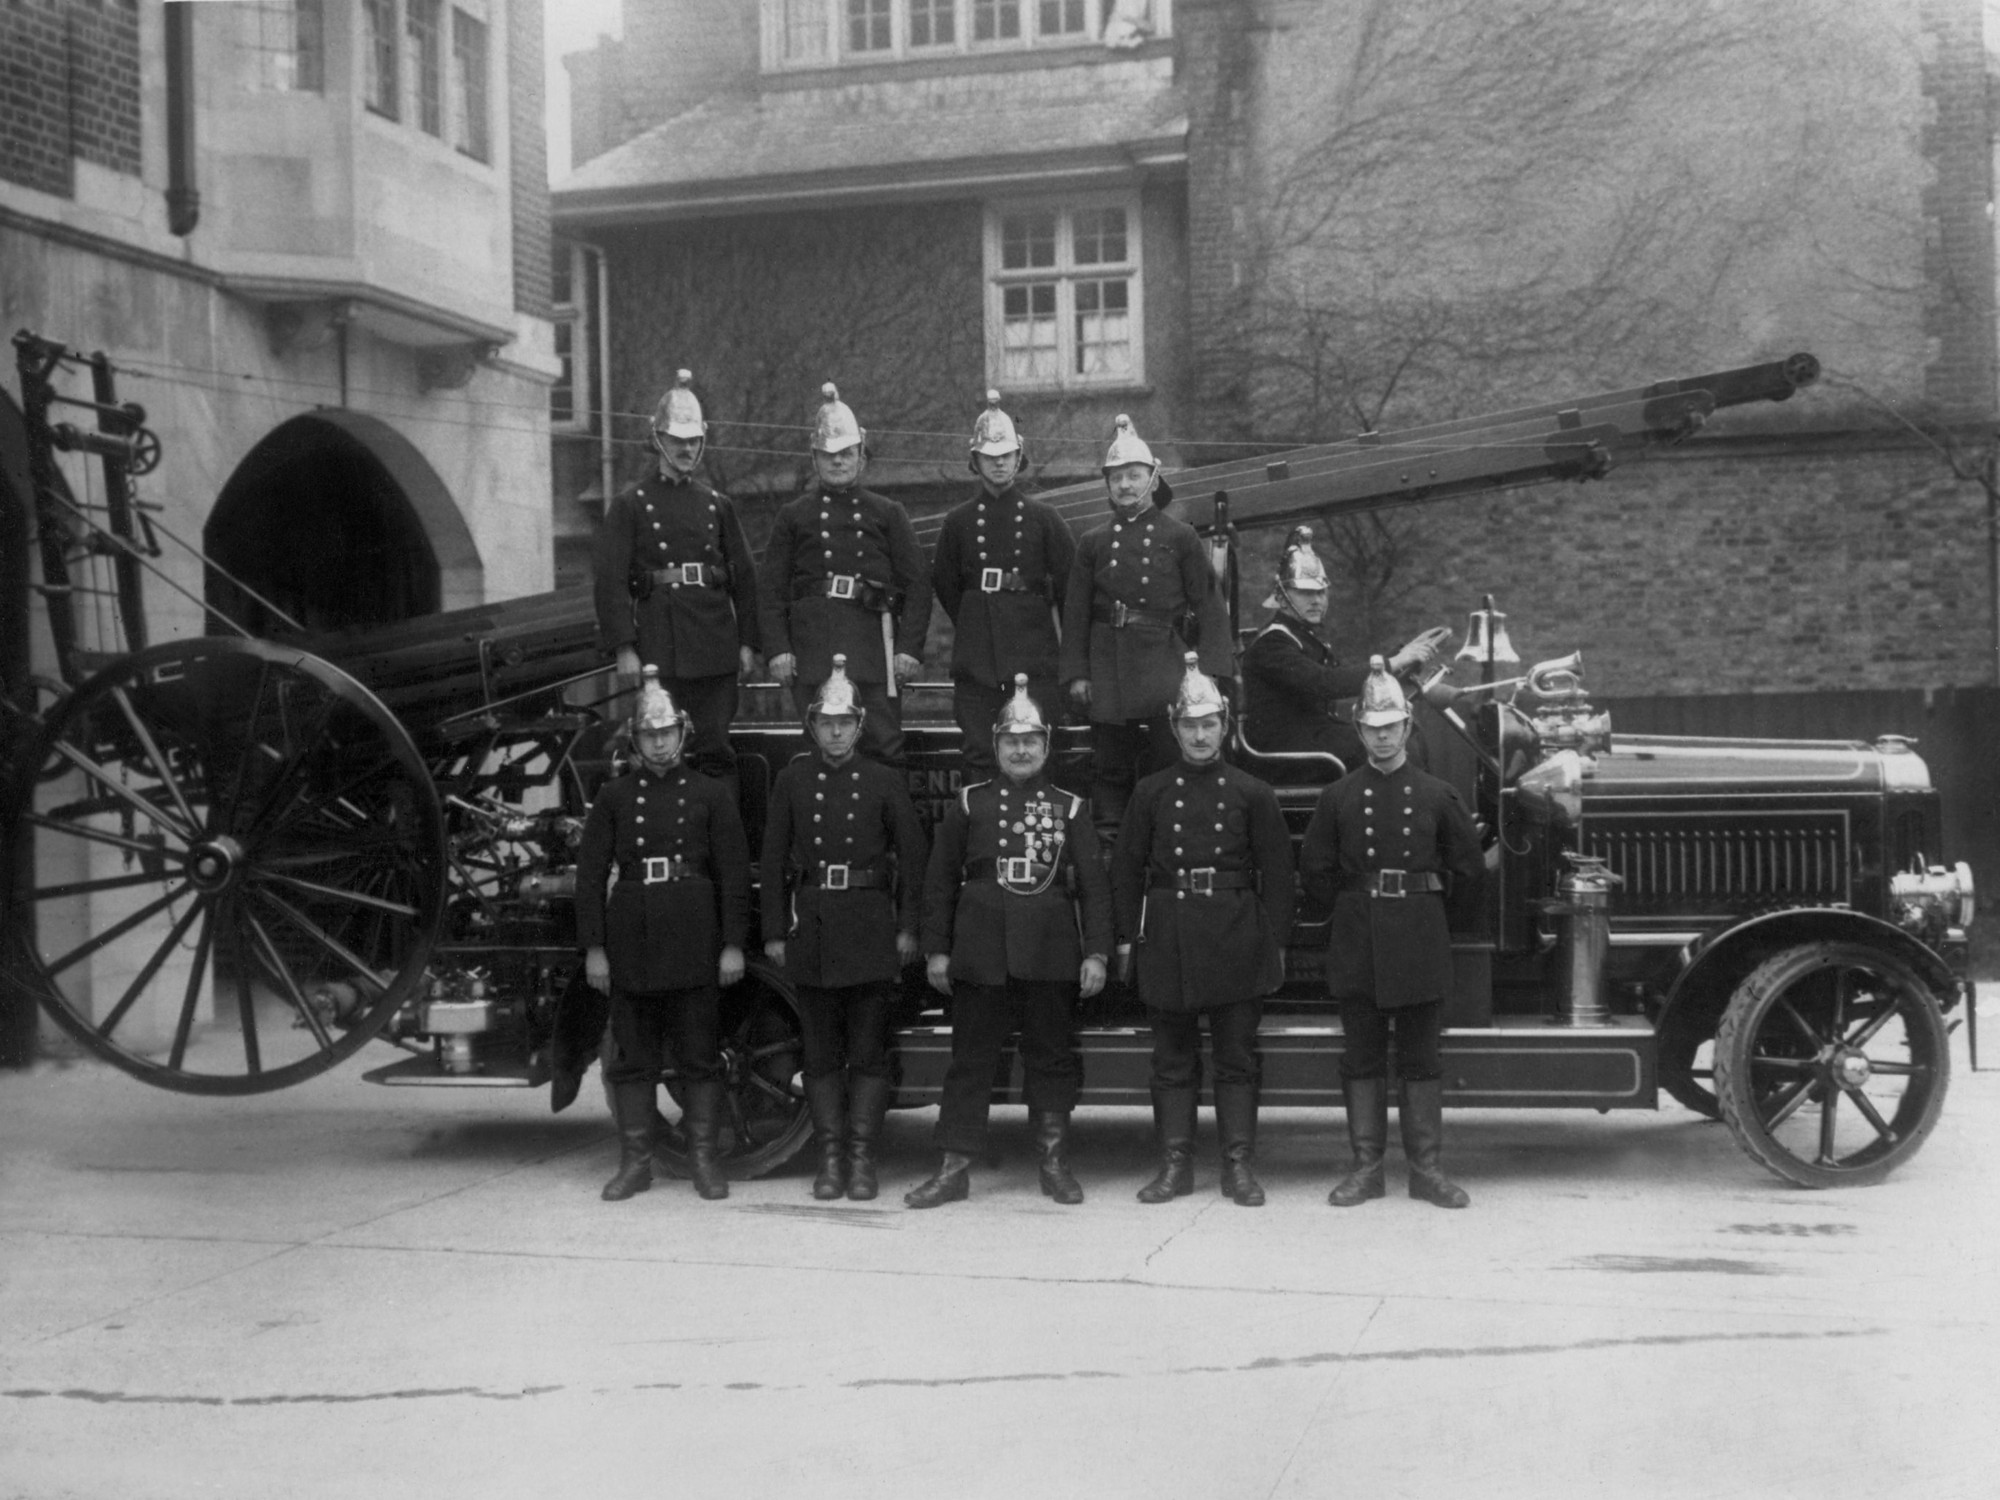 Photos: 100 years of Hendon Fire Station